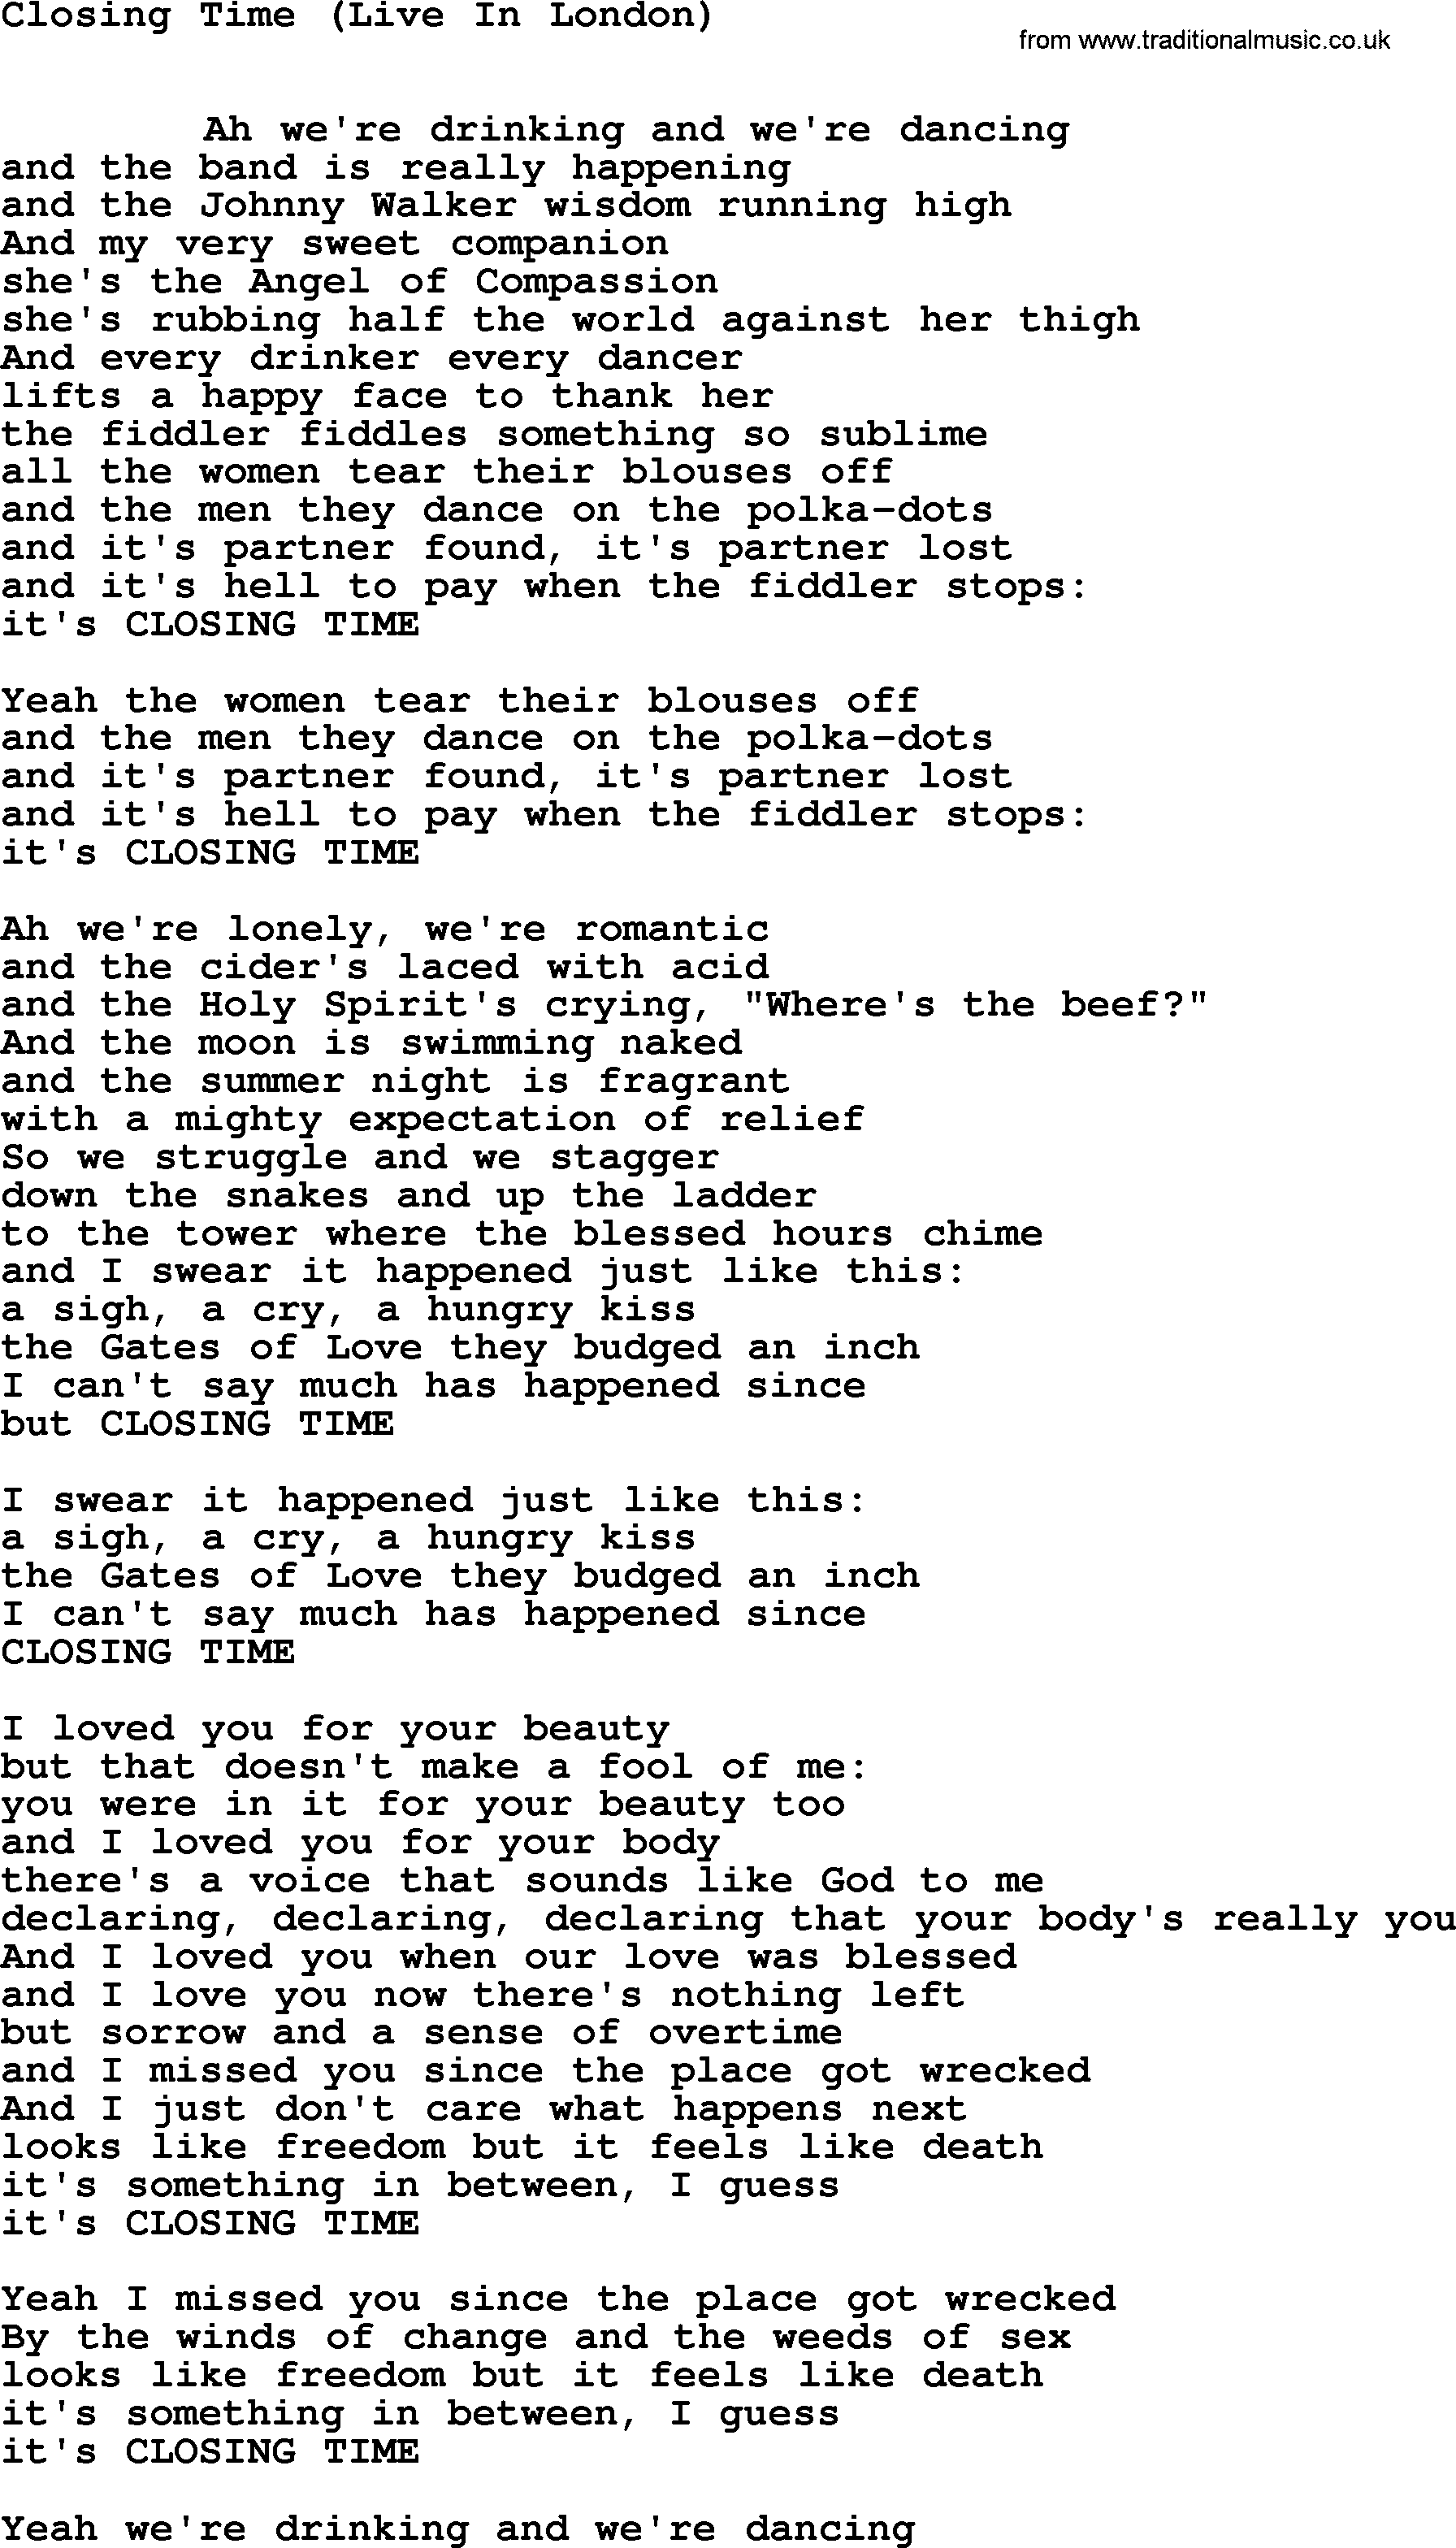 an analysis of the song closing time by leonard cohen Lyrics to closing time song by leonard cohen: ah we're drinking and we're dancing and the band is really happening and the johnny walker wisdo.